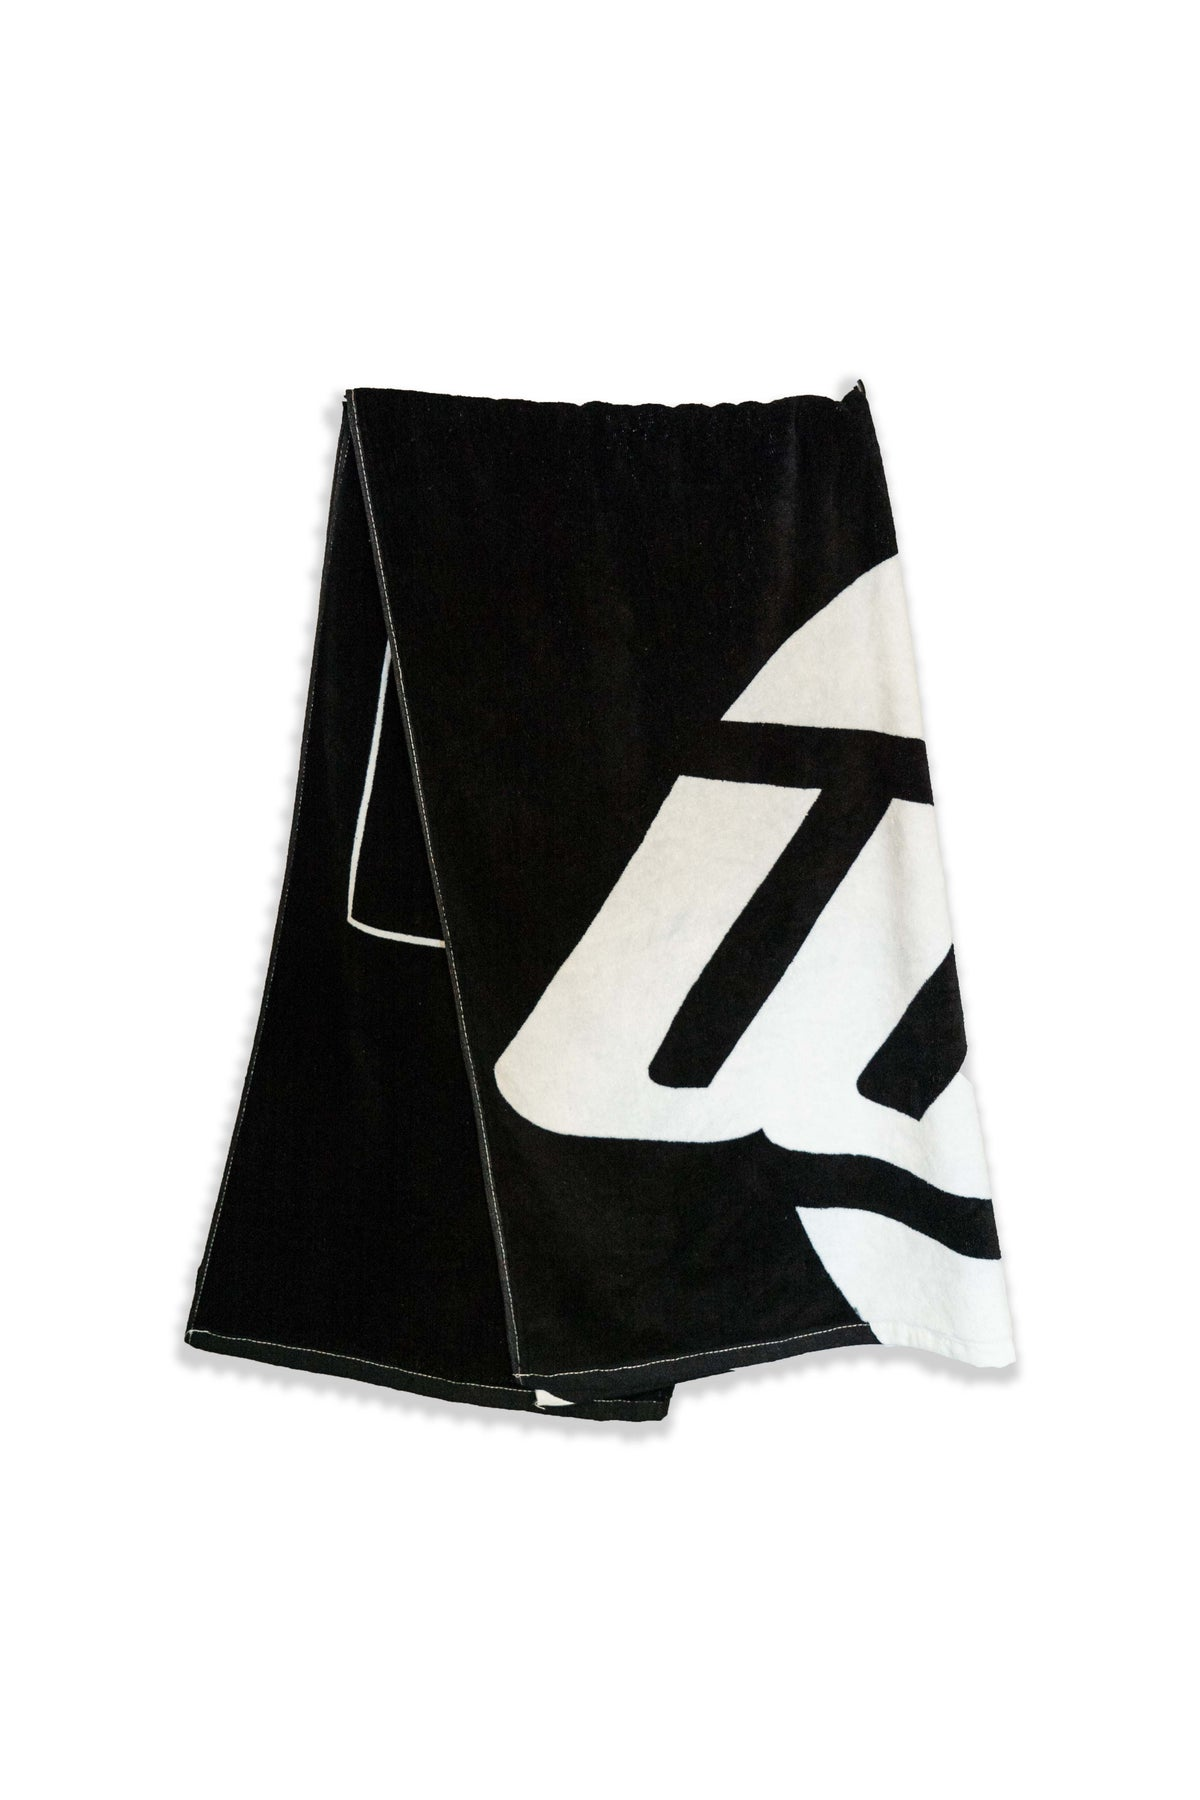 Image of Malibu Boats Towel